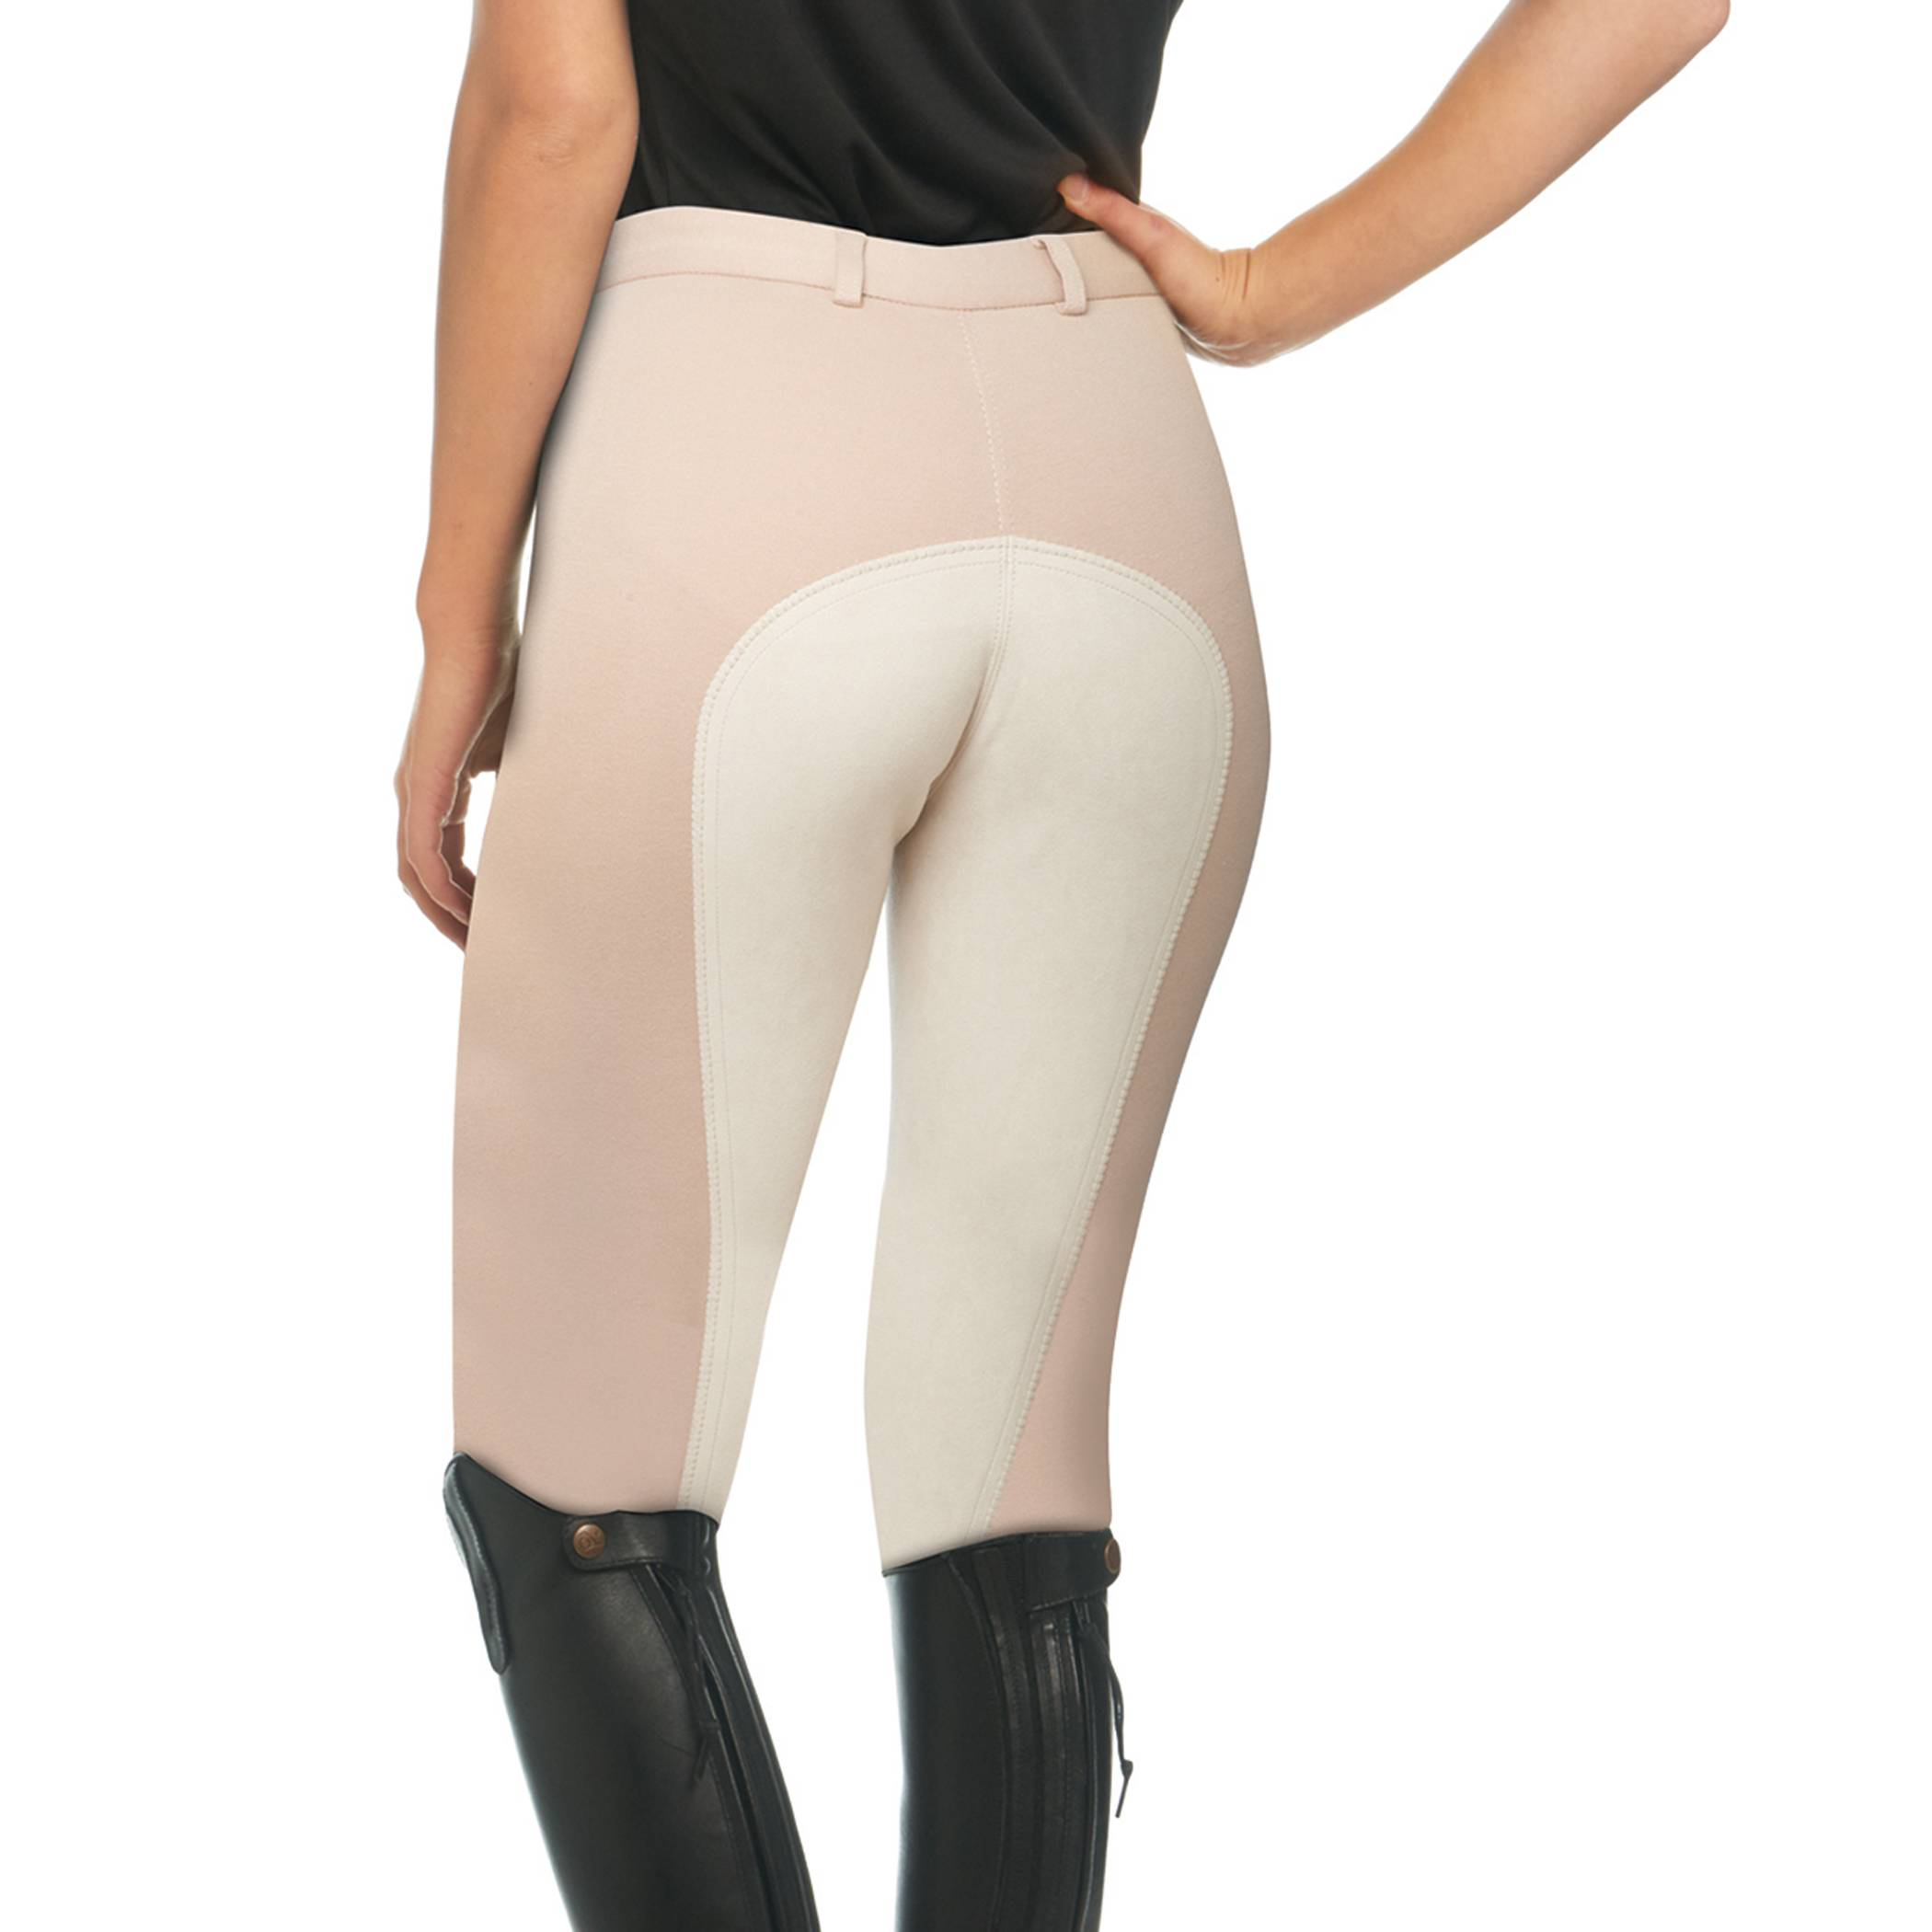 EquiStar Front Zip Full Seat Breeches - Ladies